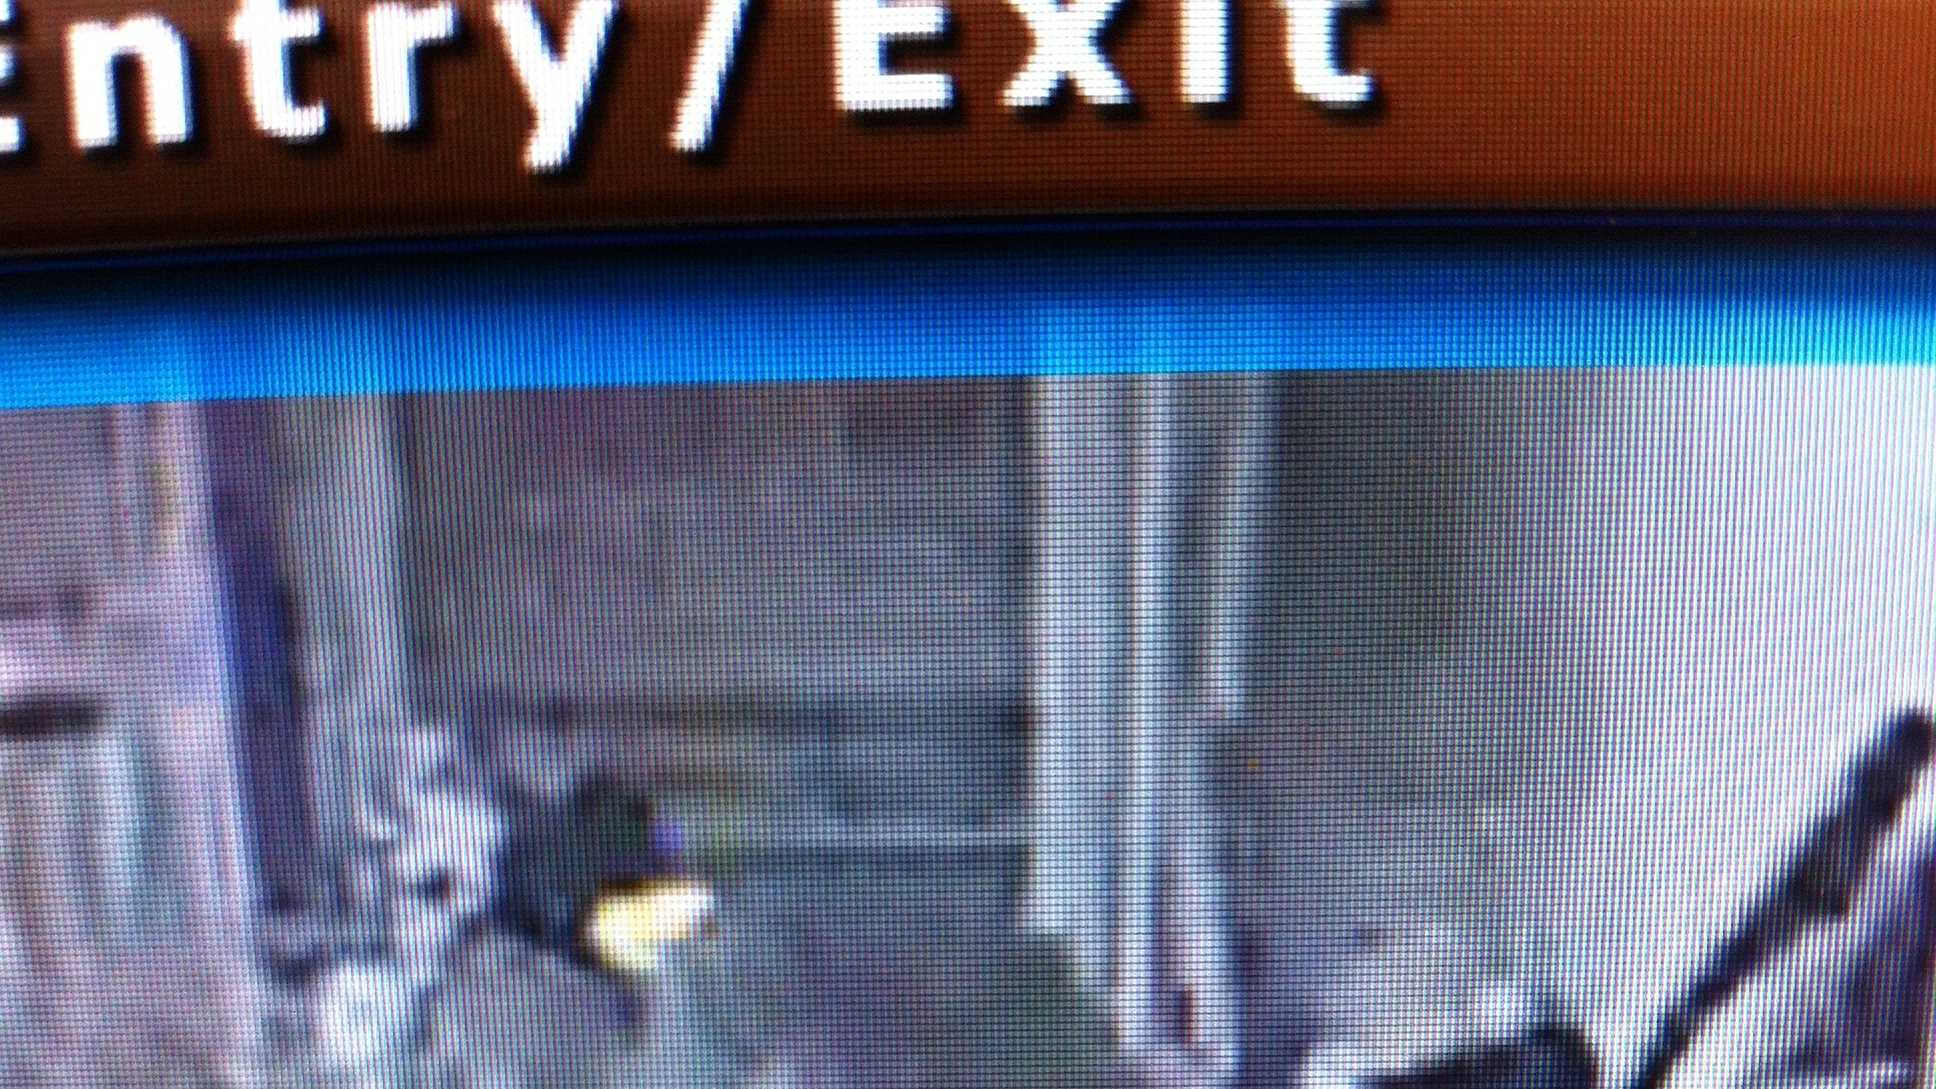 6.1 attempted robbery suspect